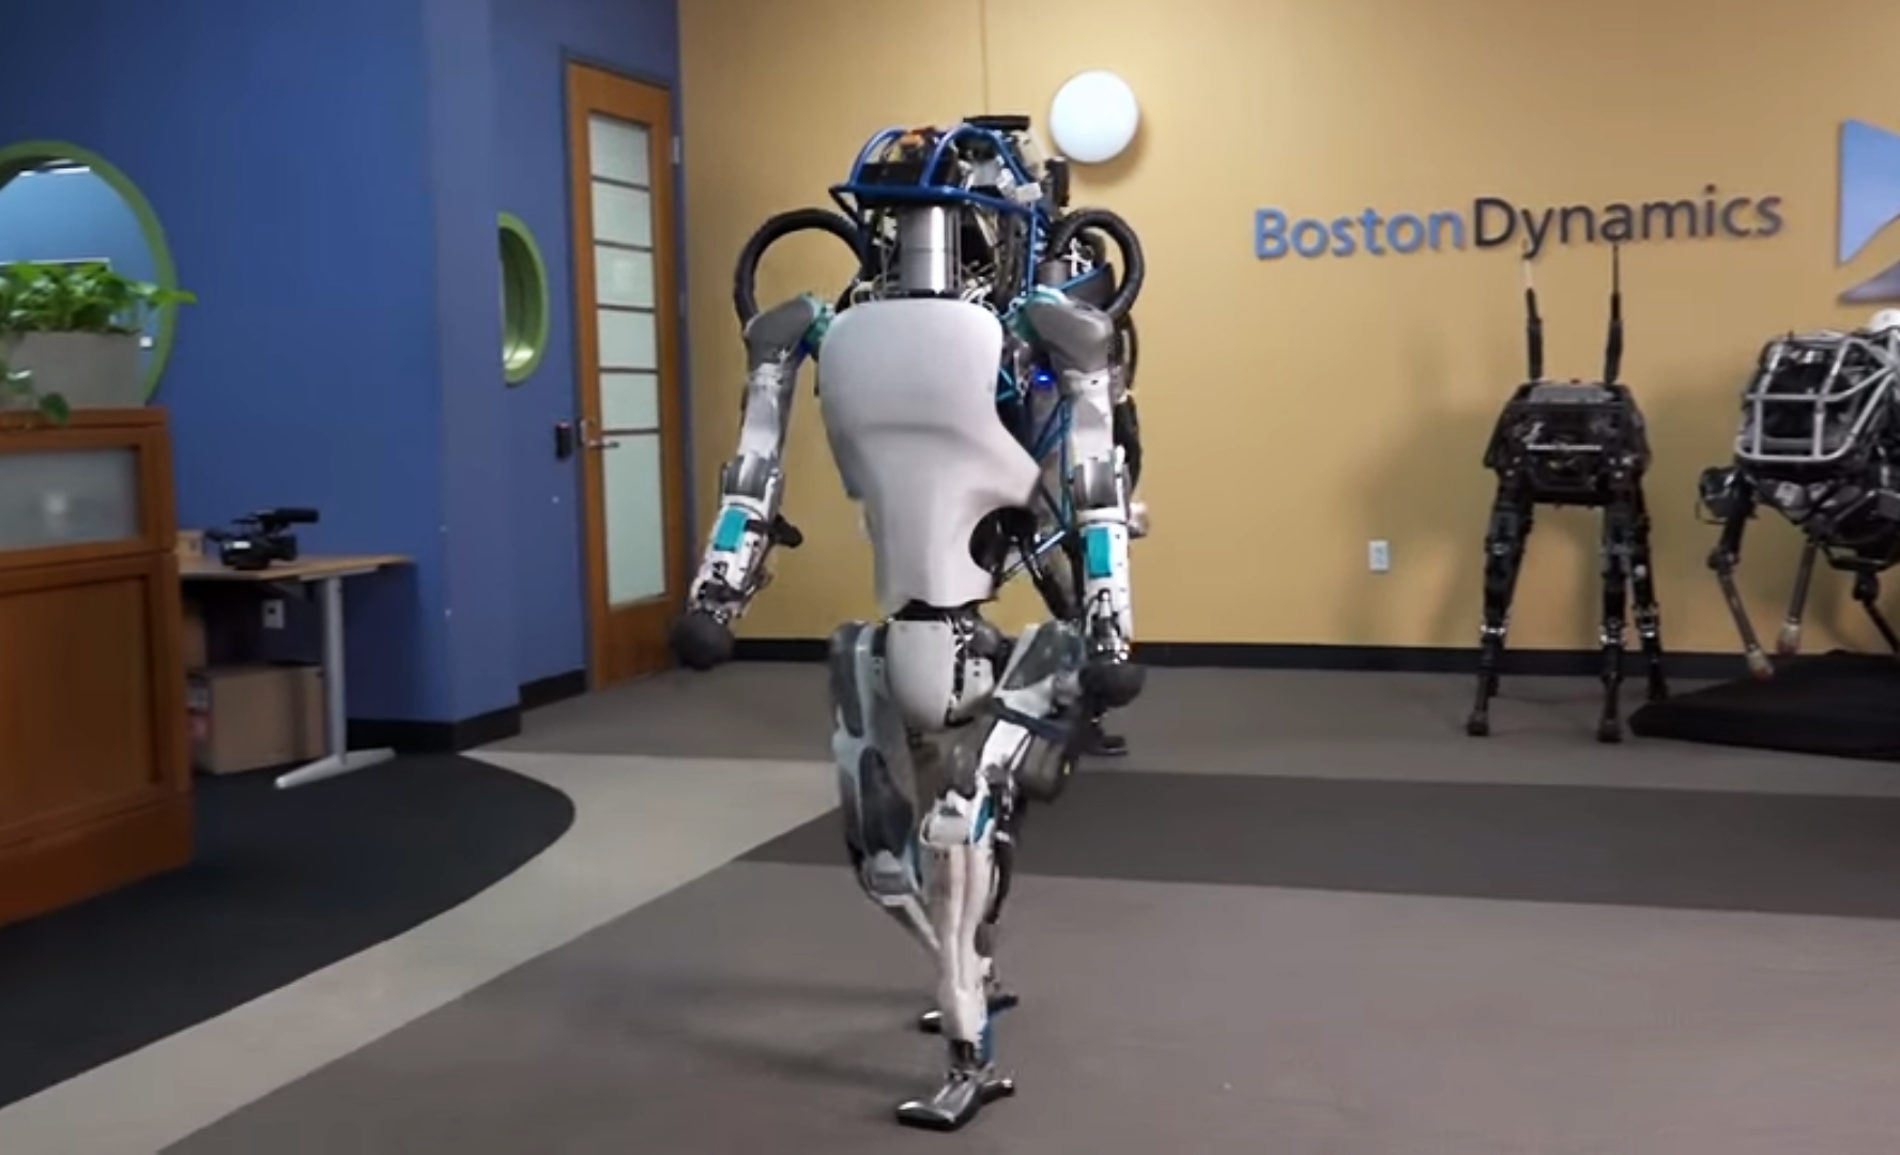 Atlas – well balanced humanoid robot